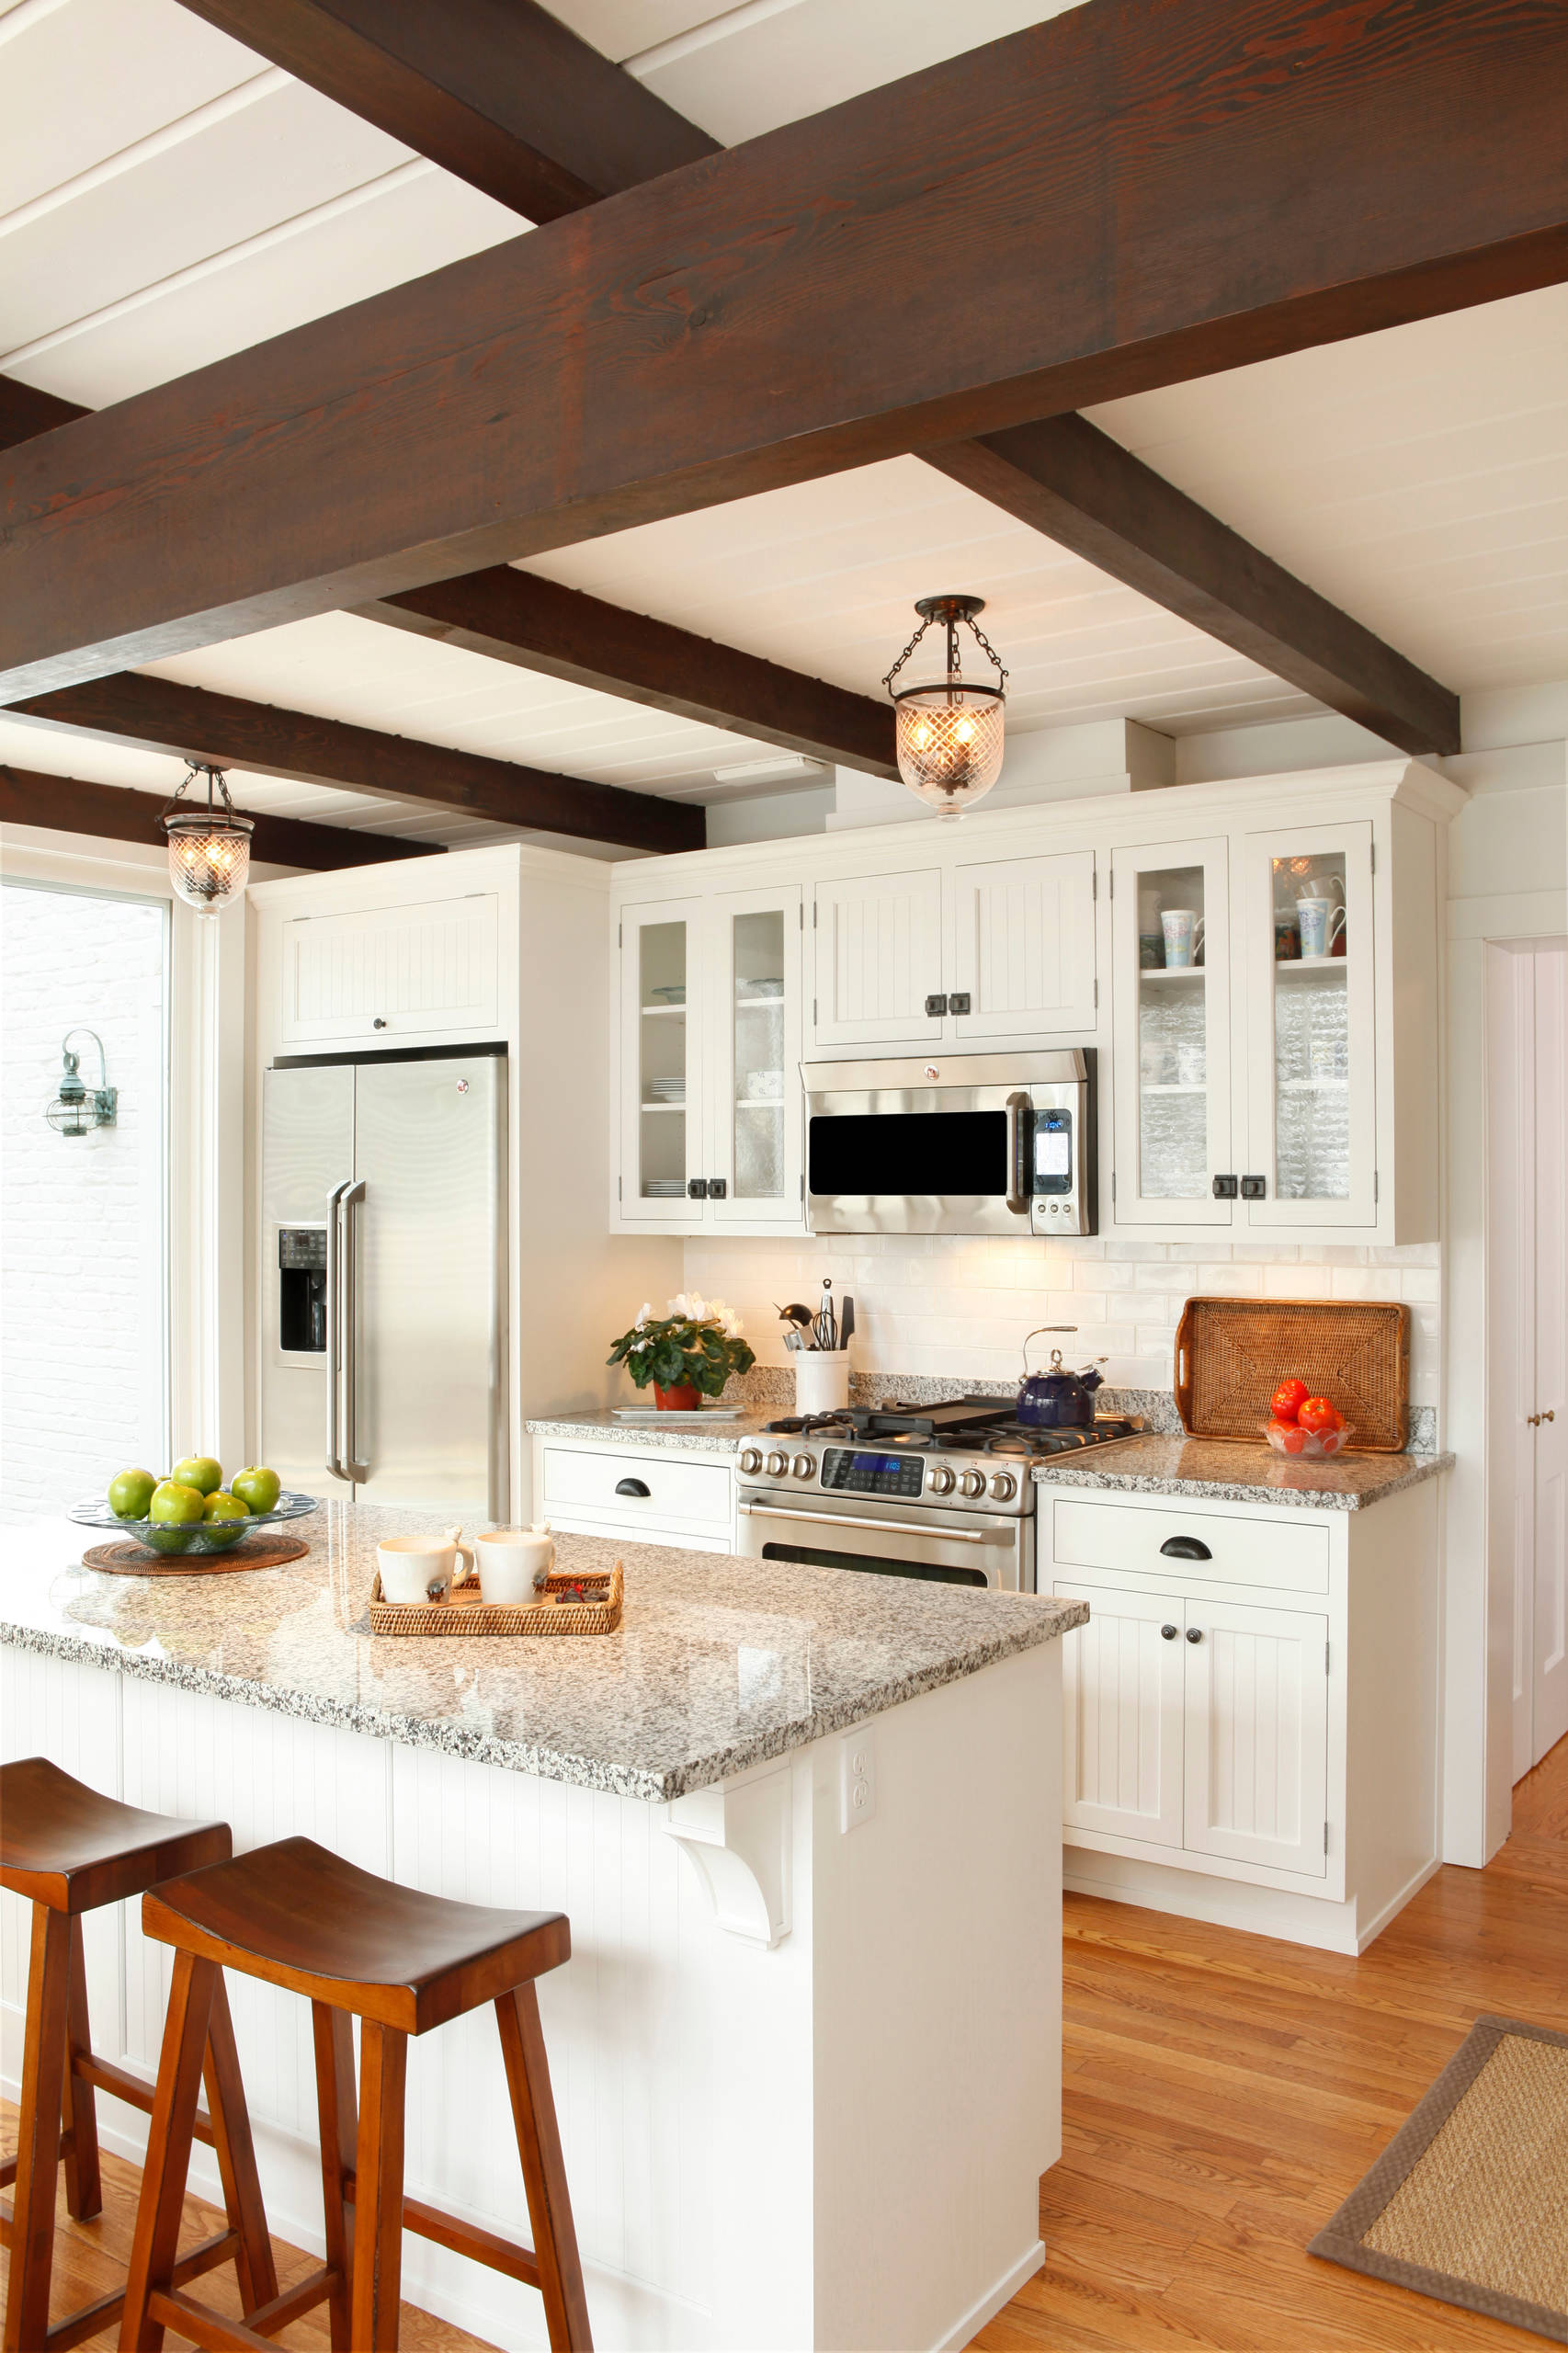 9 Beautiful Small Eat In Kitchen Pictures & Ideas   July, 9 ...